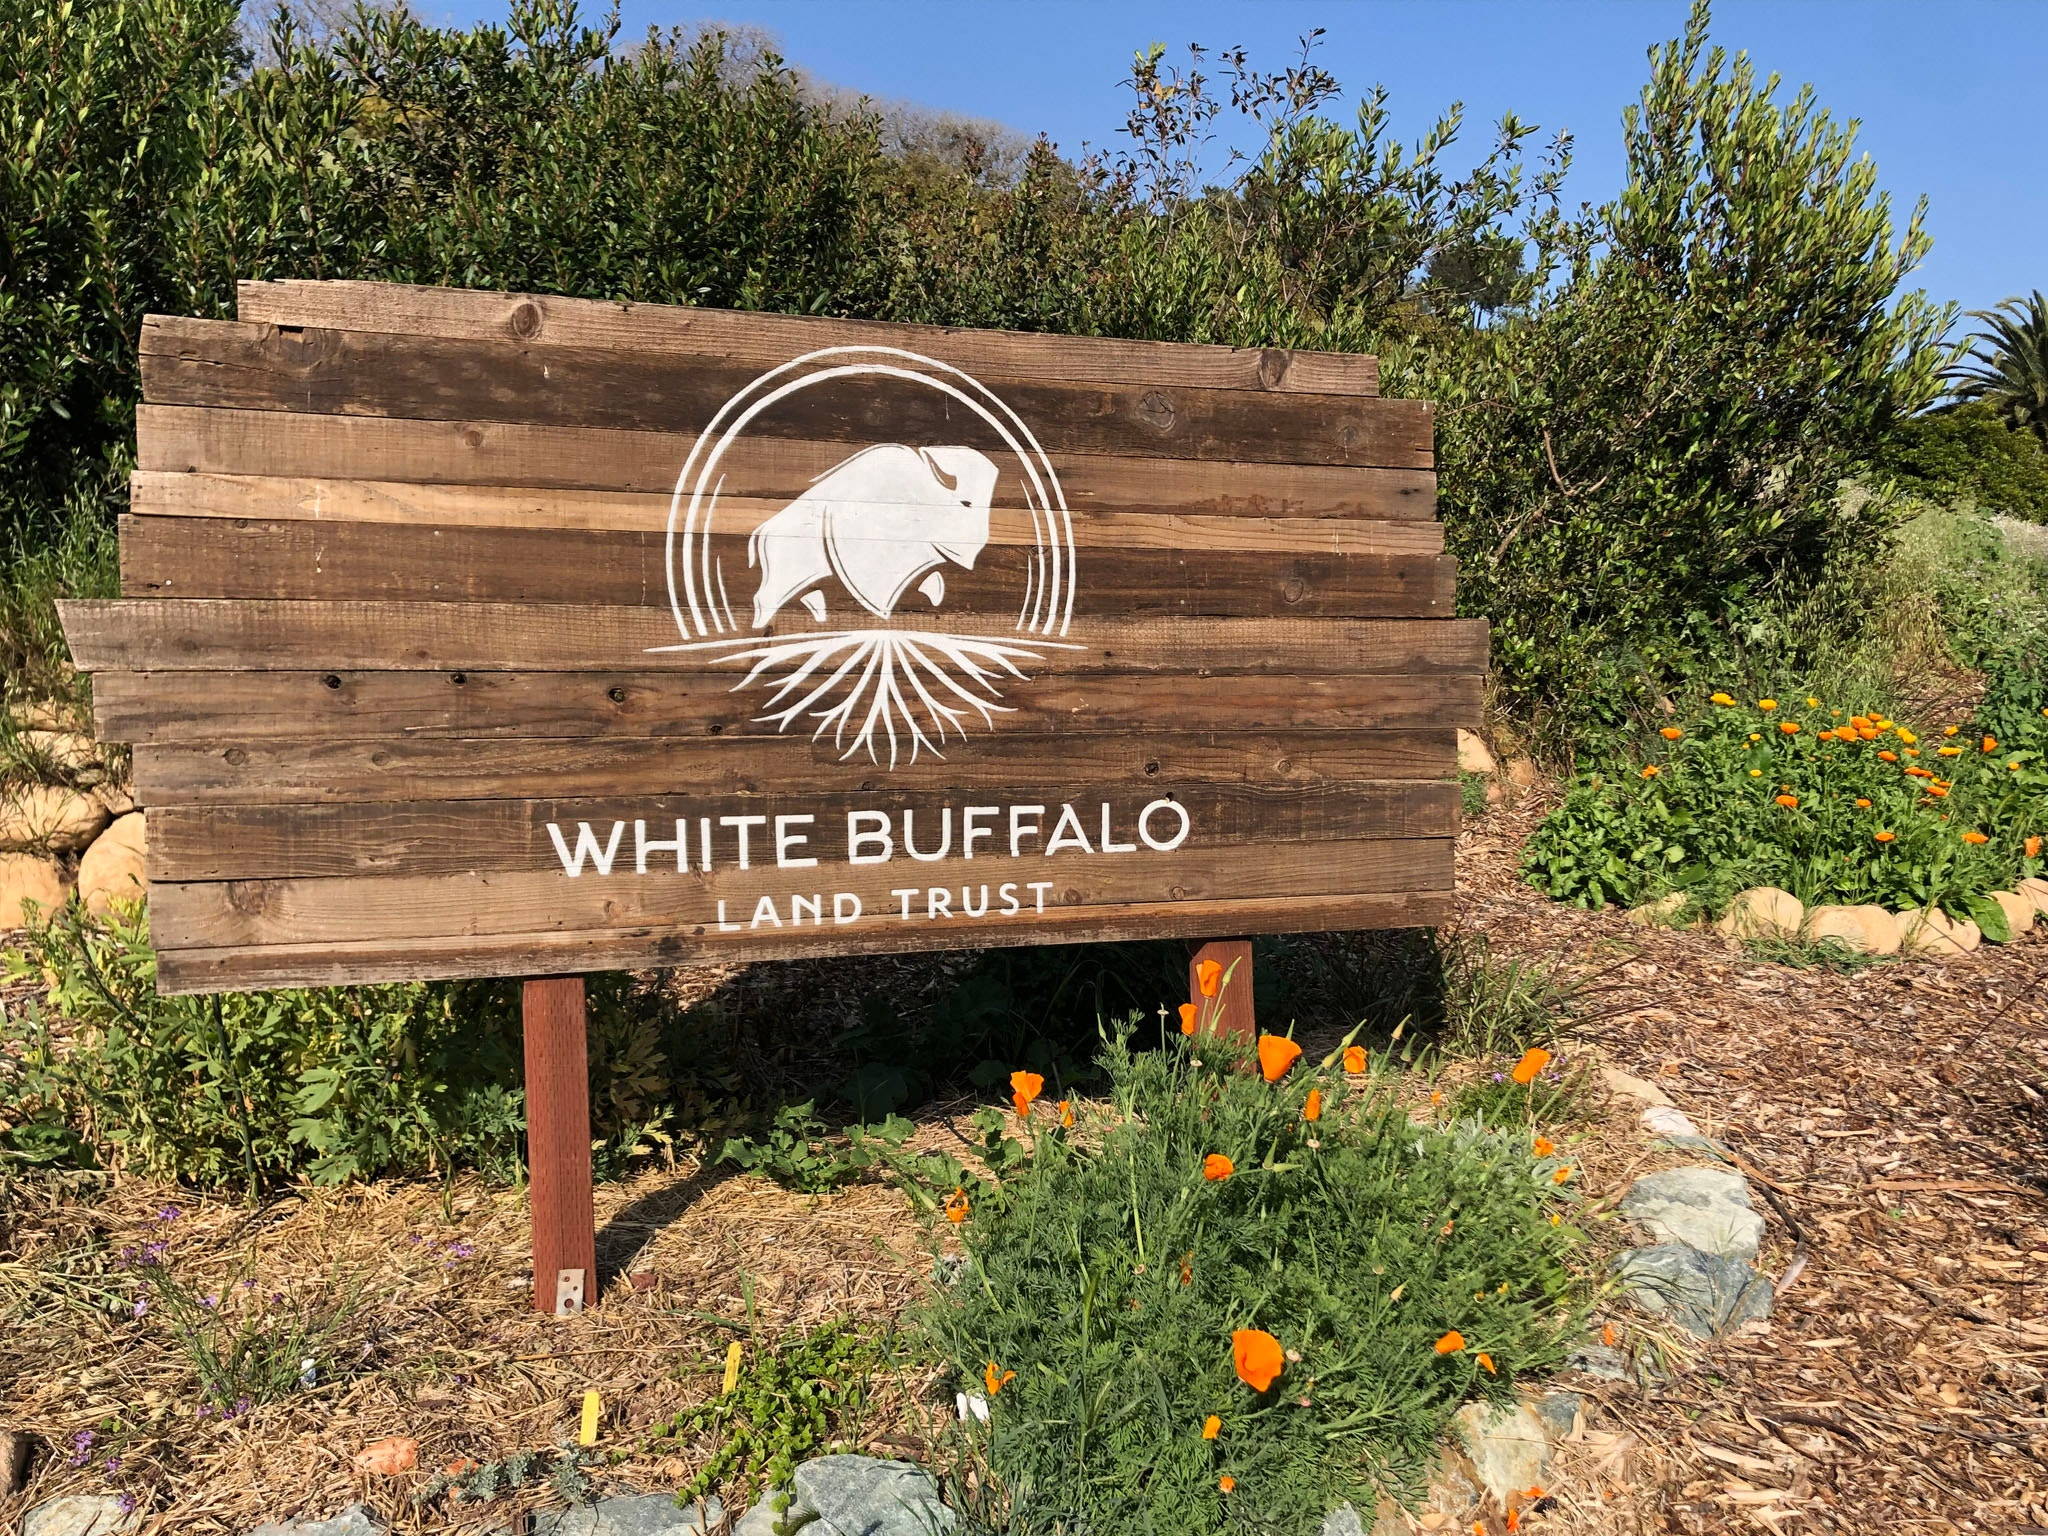 White Buffalo Land Trust sign with logo